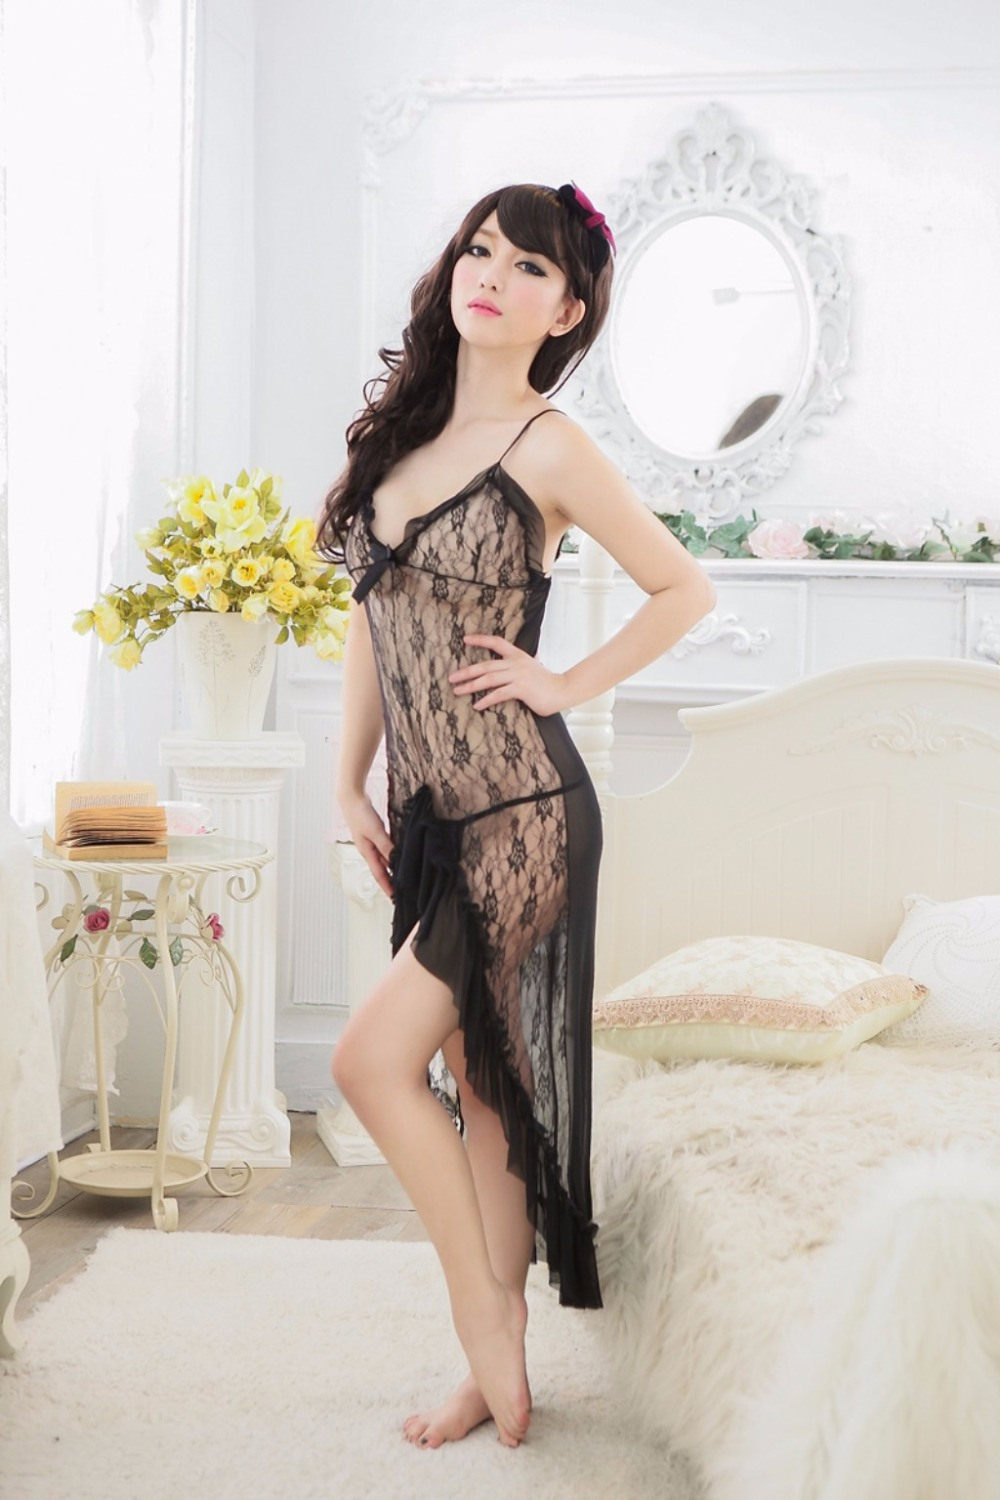 2017 Sexy Lingerie Hot Black Pajamas Long Dress V Neck Lace Dress Sexy Erotic Lingerie Skirt Sexy Costumes Underwear For Women